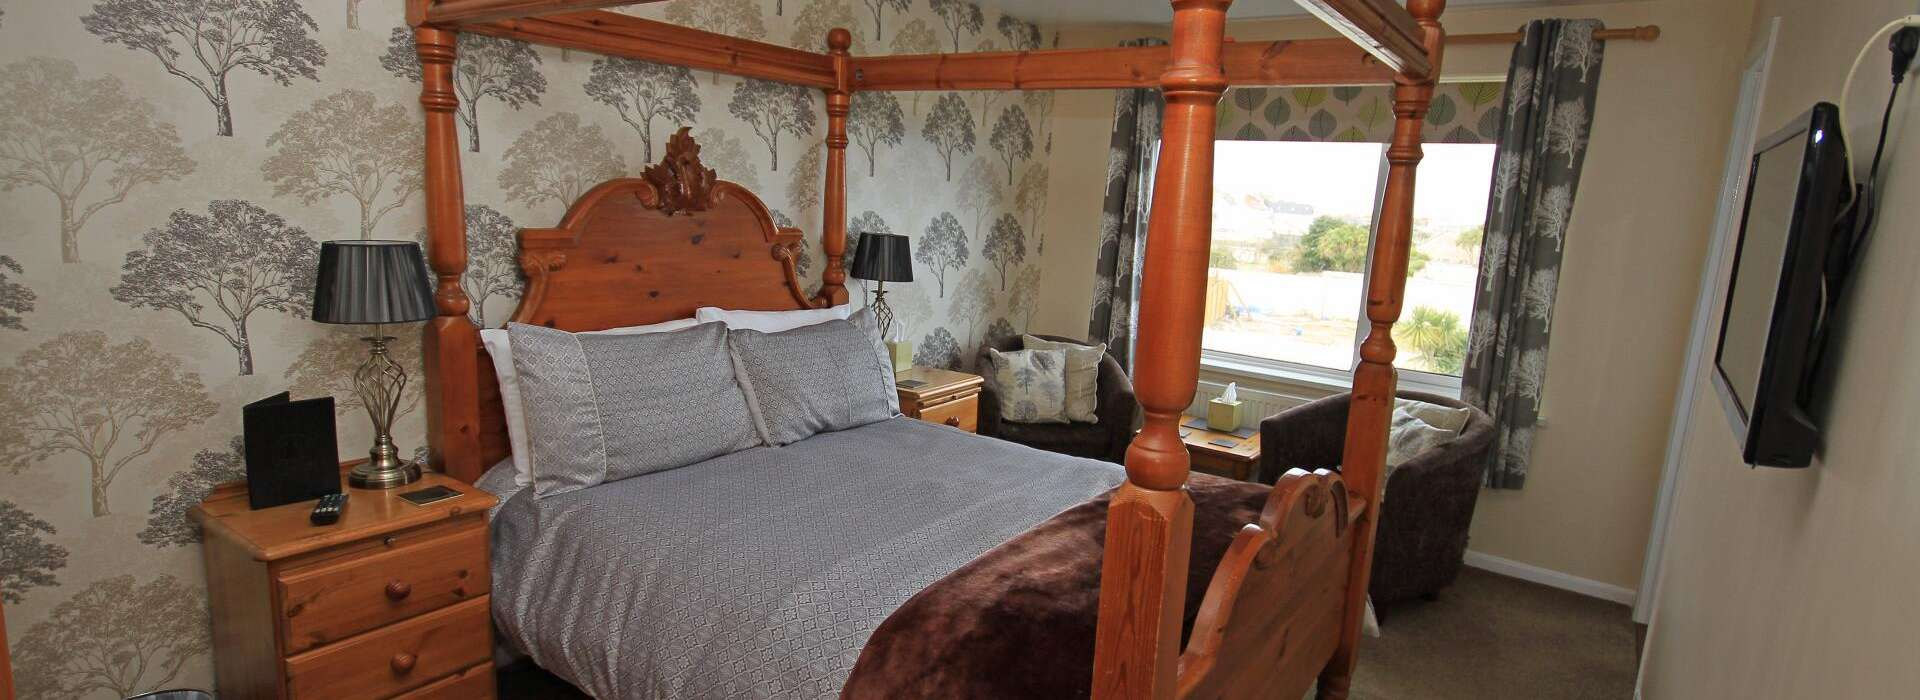 Pine Lodge, Bed and Breakfast in Newquay